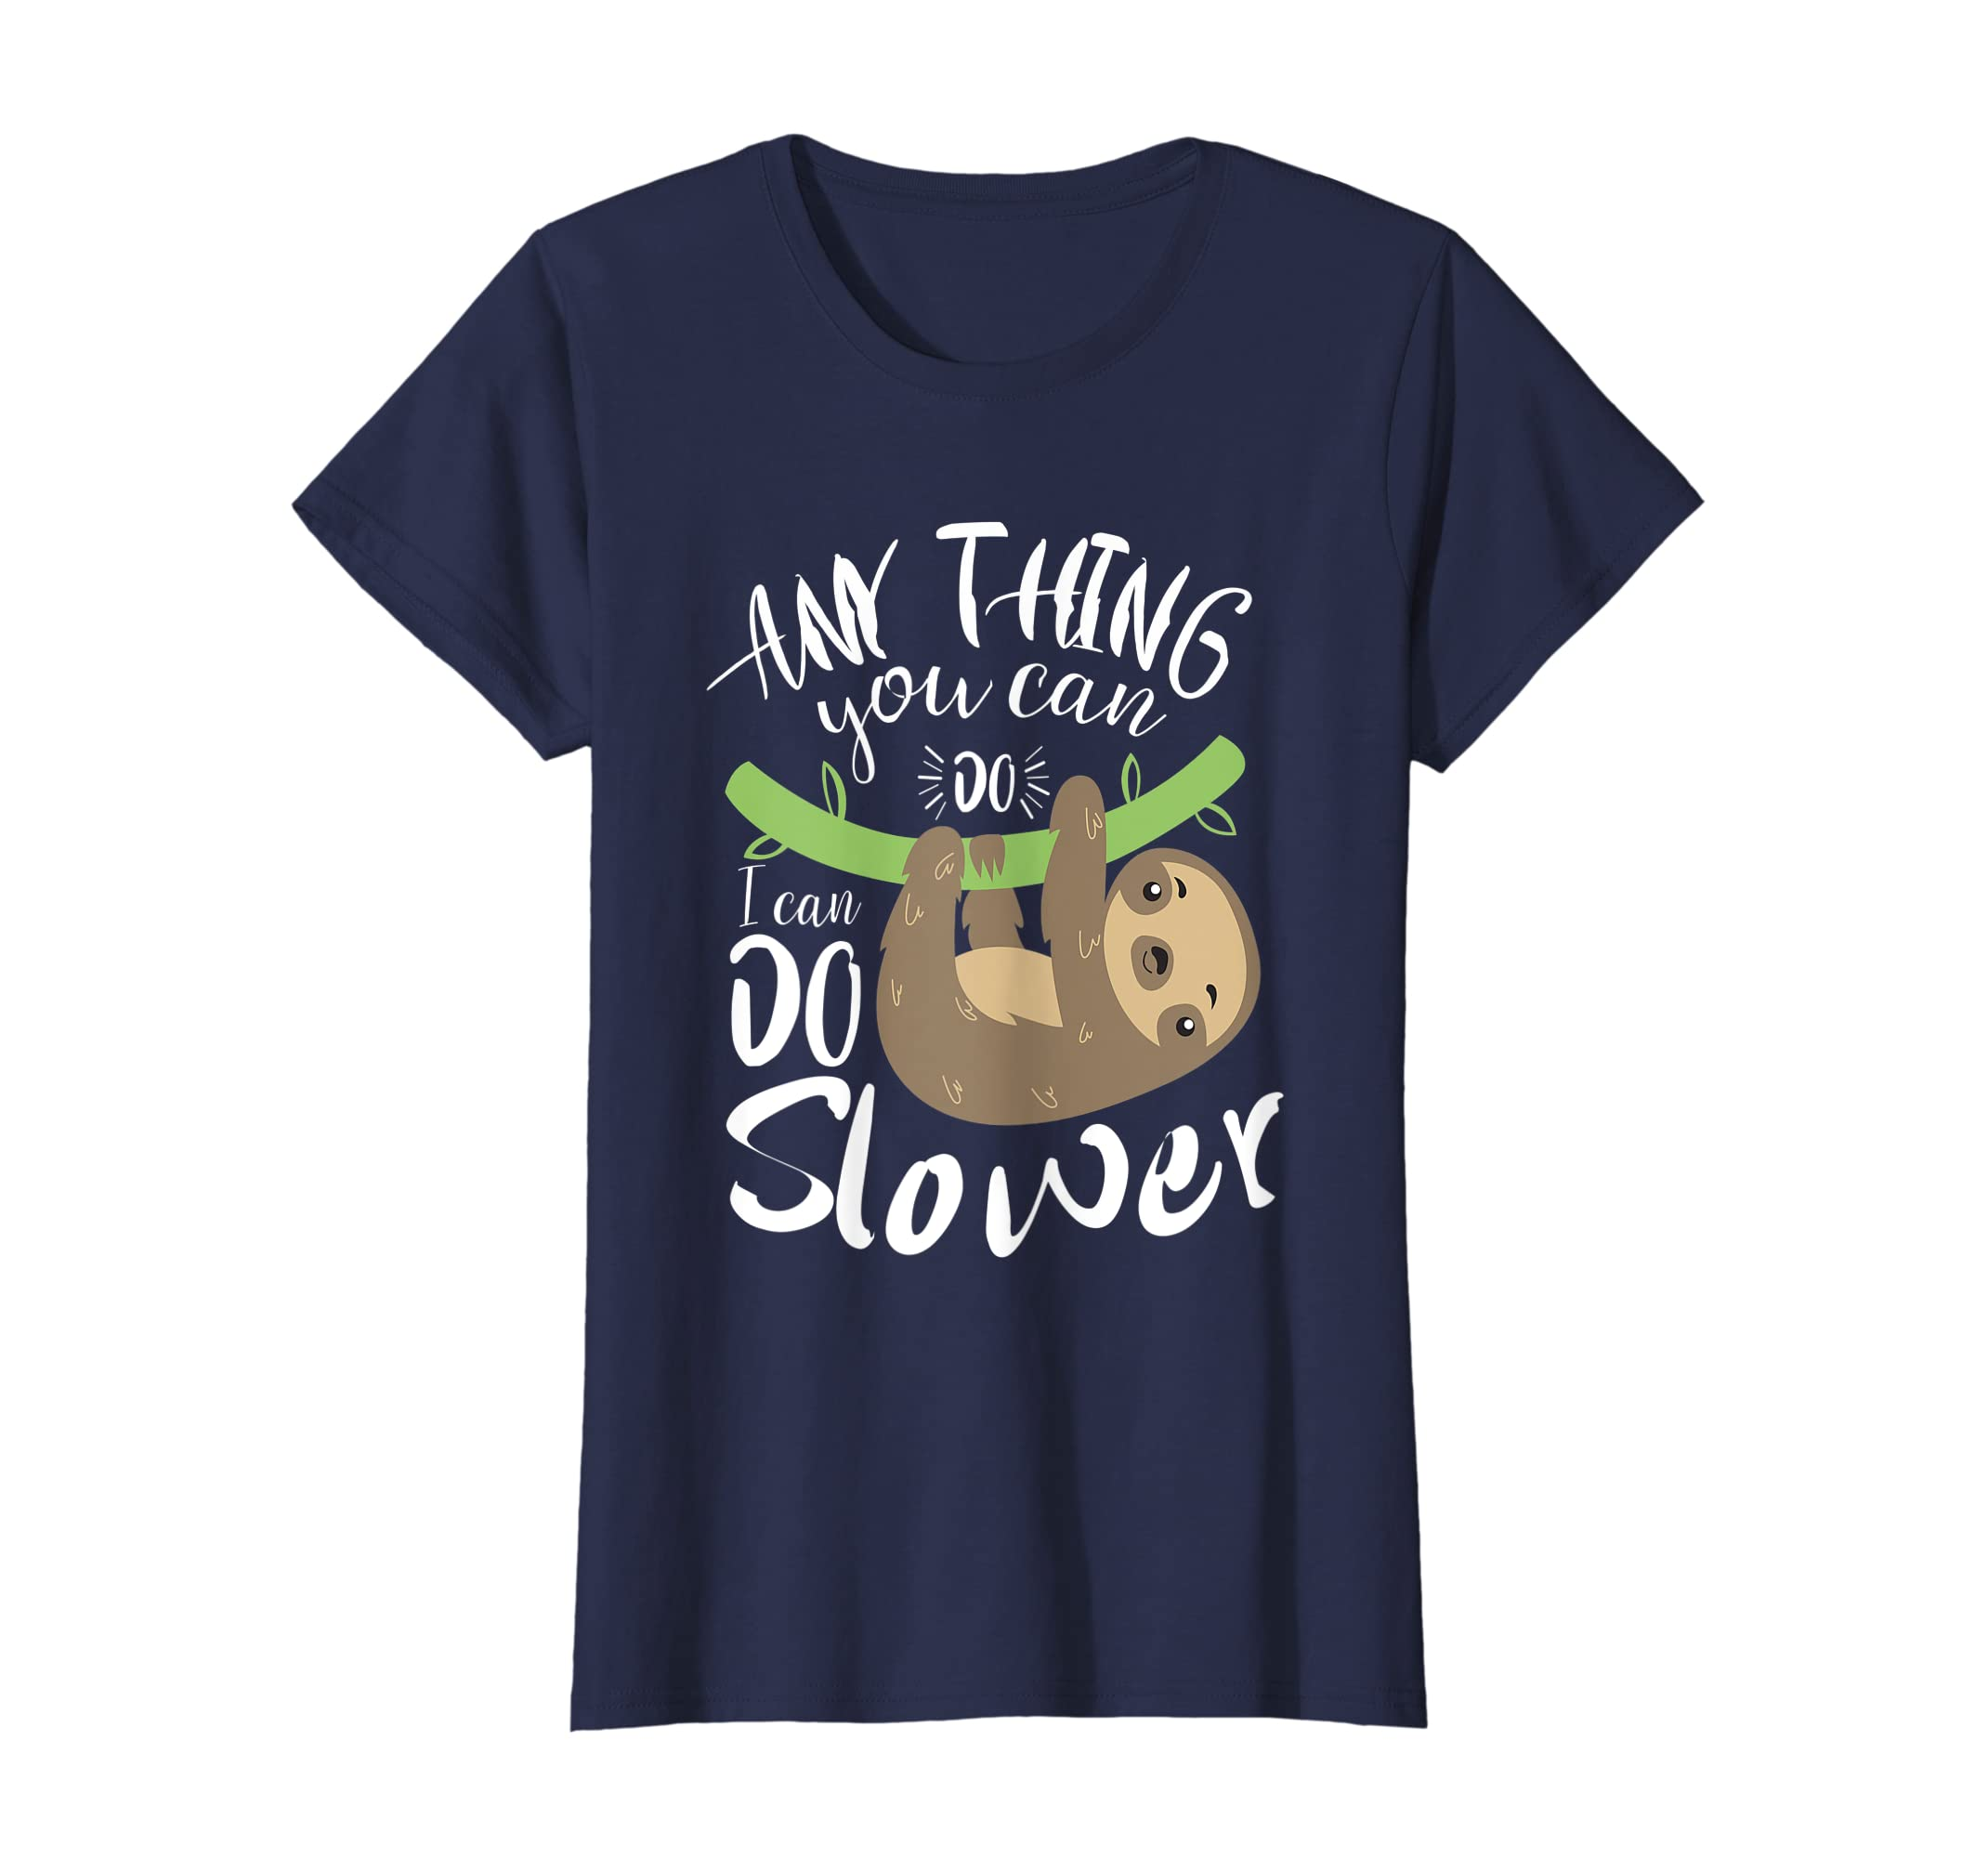 fac845f4a Amazon.com: Anything You Can Do I Can Do Slower Funny Sloth Shirt: Clothing